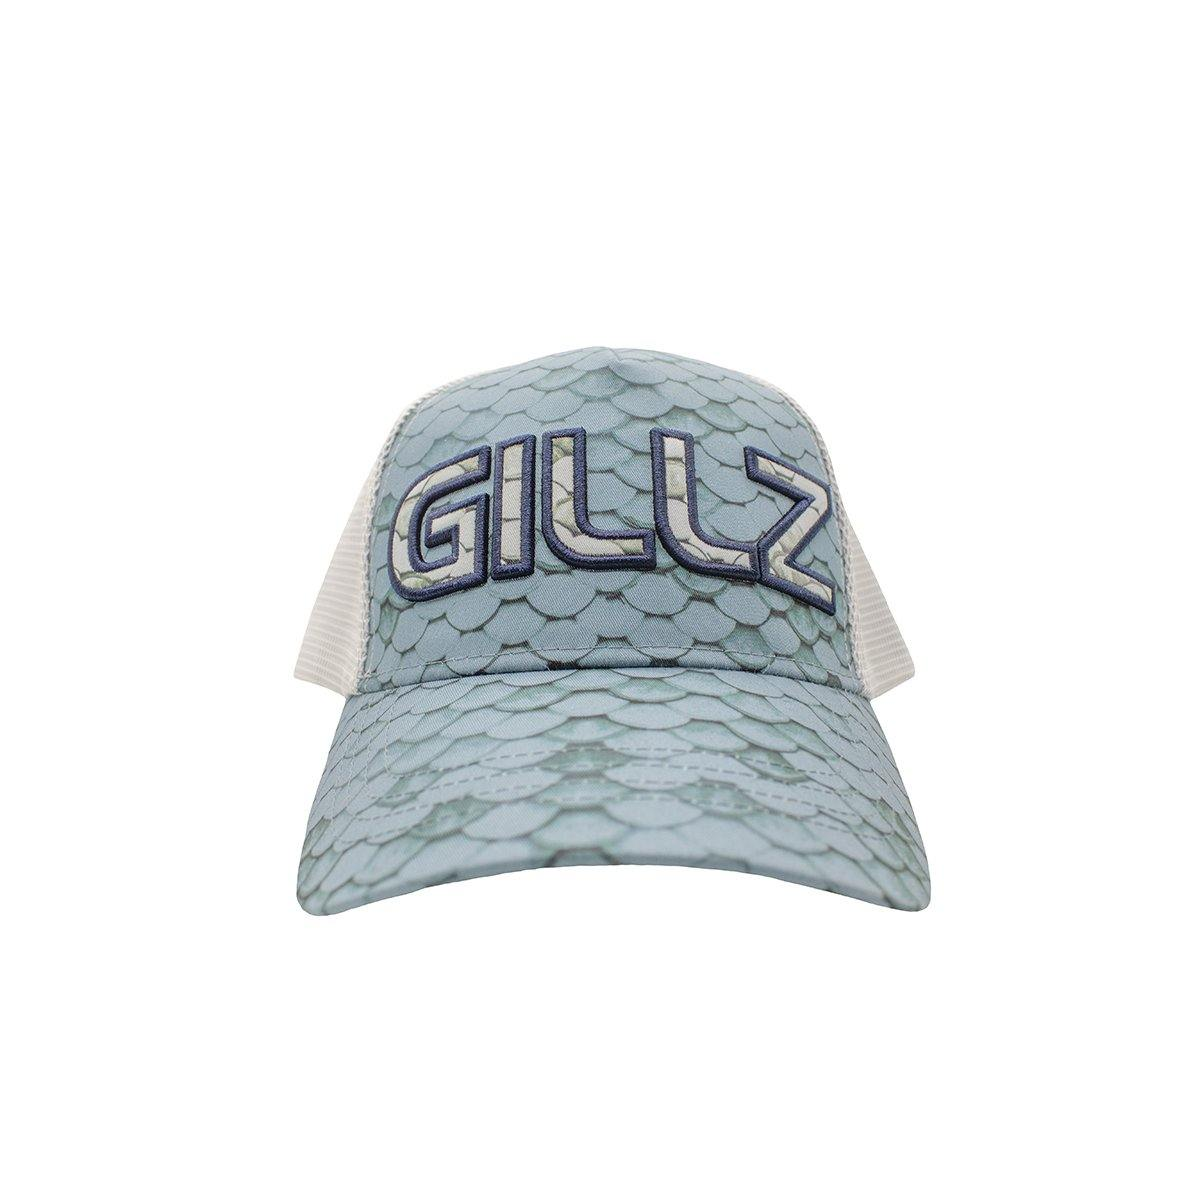 Men's Extreme Scales Hat - Gillz